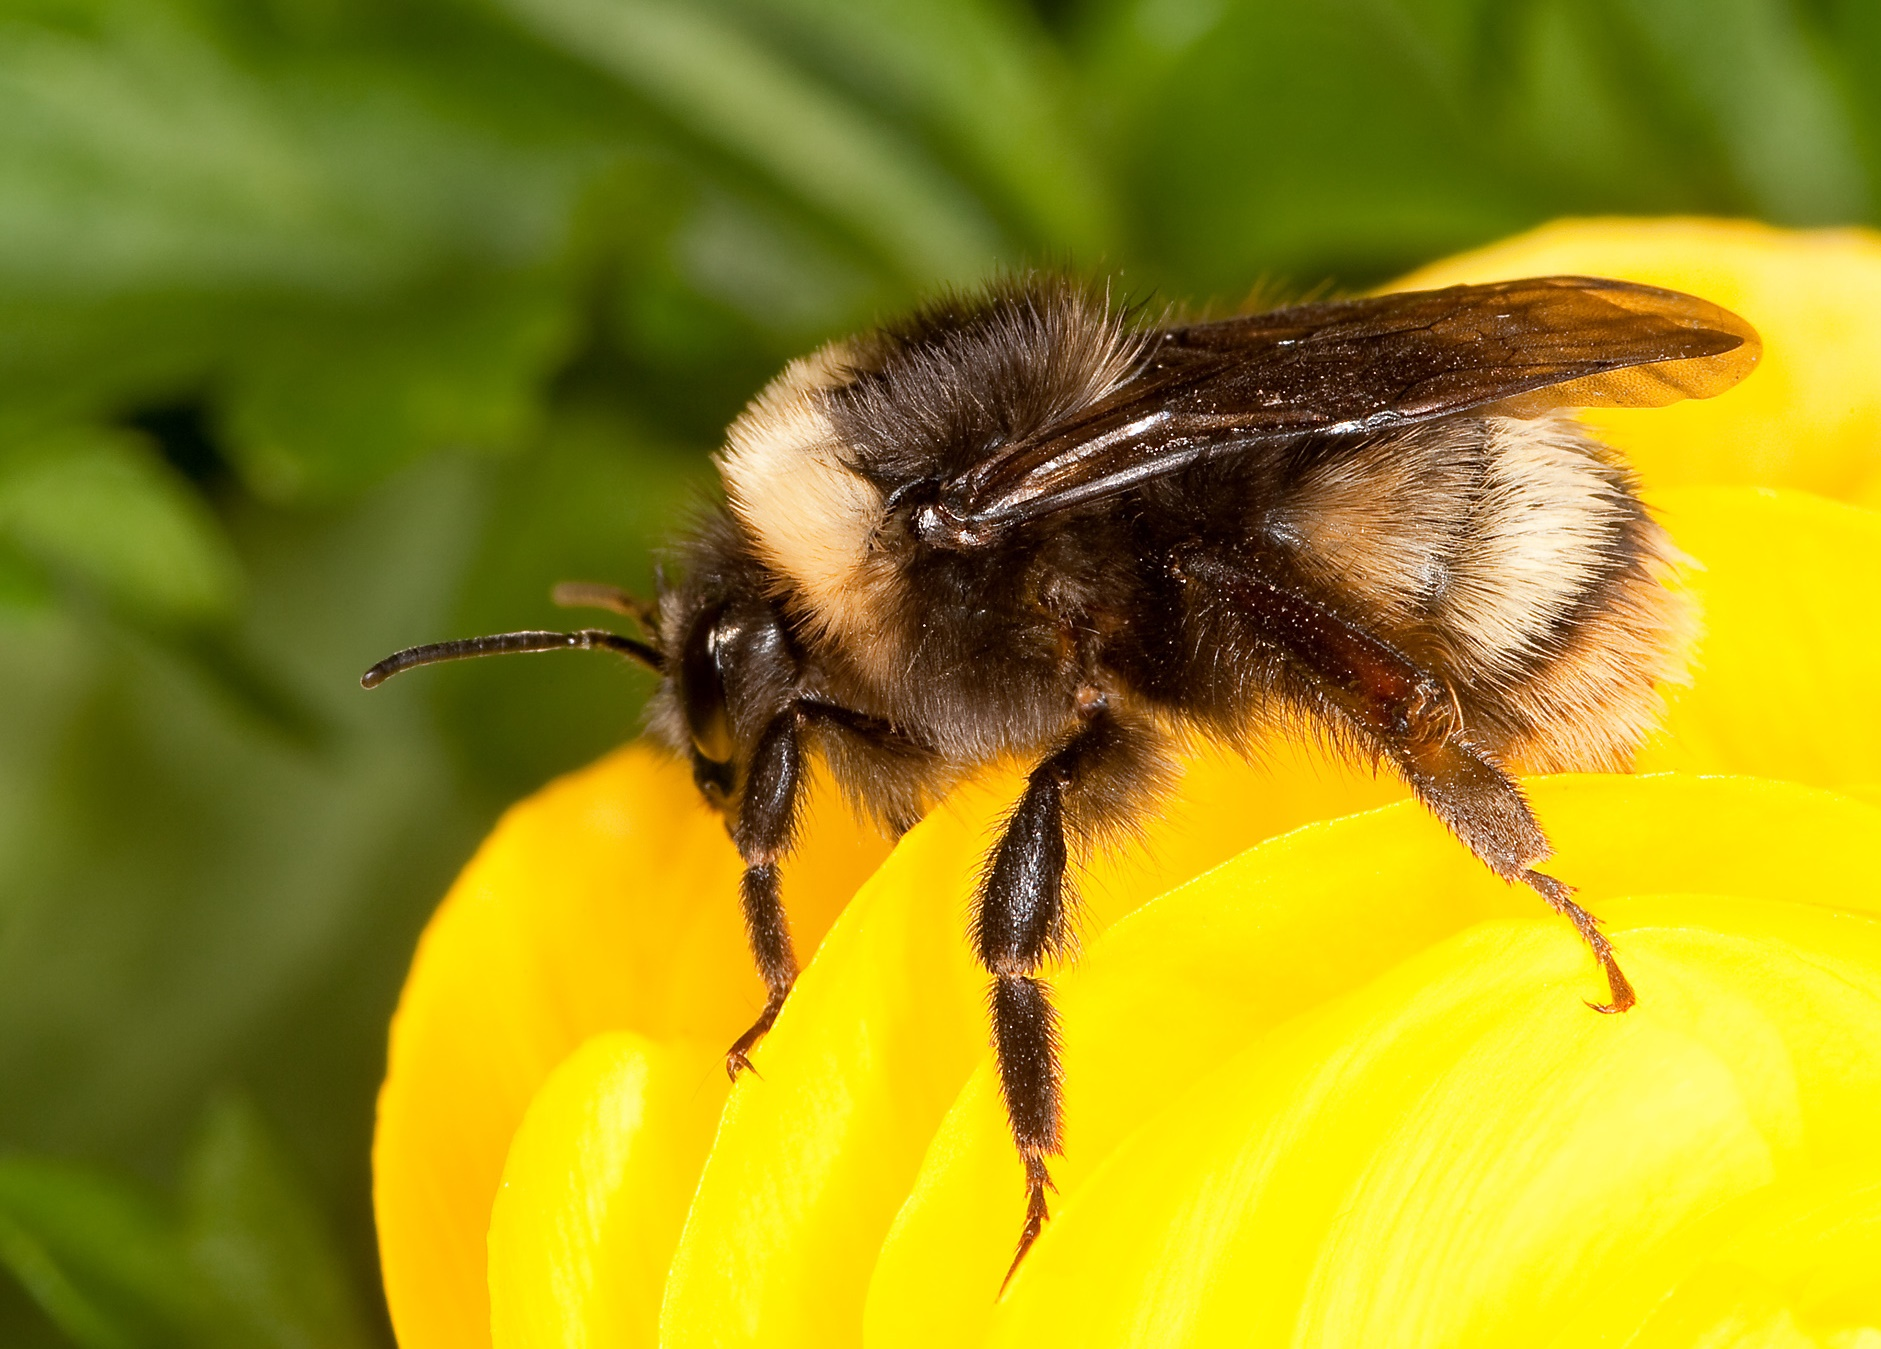 Closeup bumblebee photo via USDA